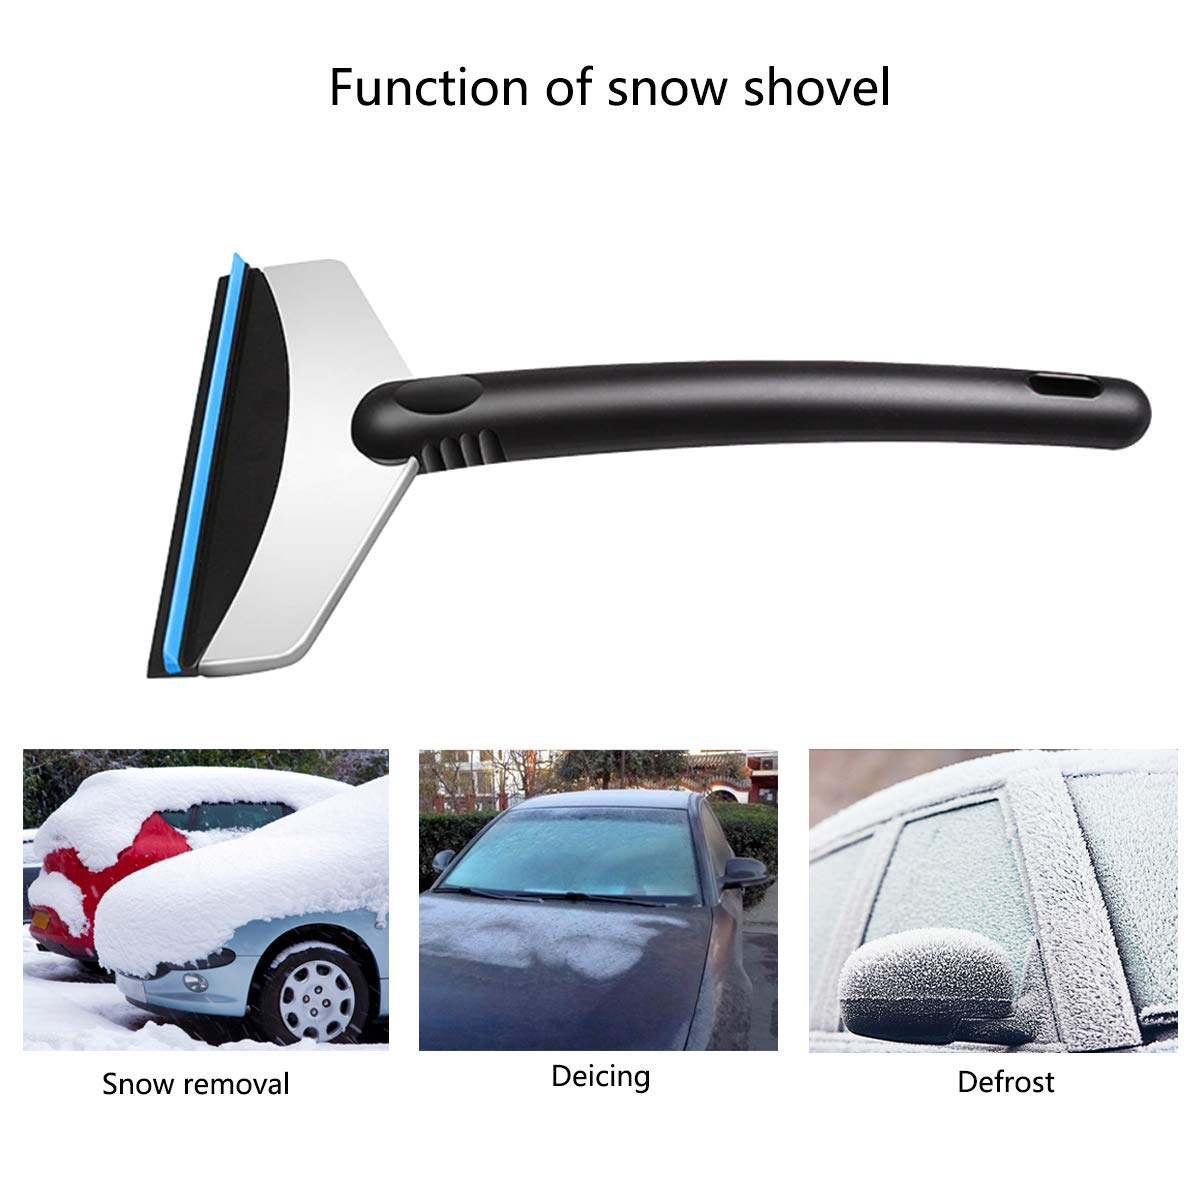 Silver black cjixnji Car Ice Shovel,Stainless Steel Car Snow Shovel Ice Scraper Frost and Windscreens Deicing Scraper Wiper Winter Home Using Snow Remover Cleaning Tool for Car SUV Truck